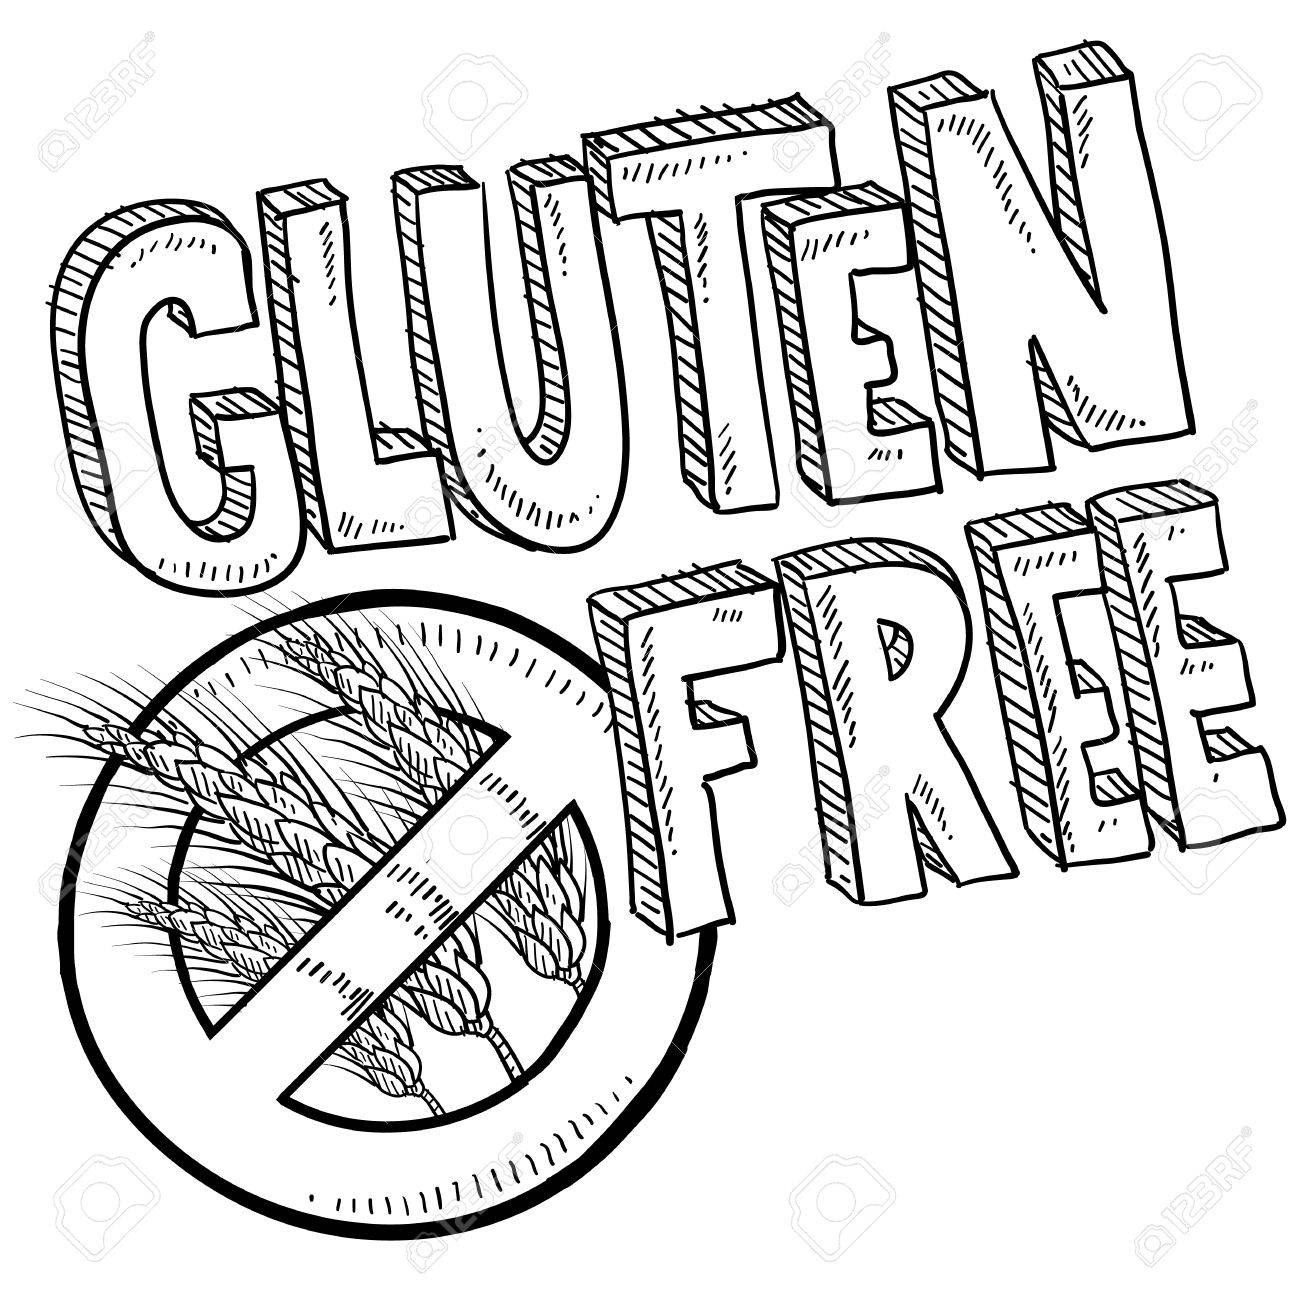 Doodle style illustration of a gluten free food or product label  Includes no wheat or grain symbol and lettering  Vector format Stock Photo - 15855980